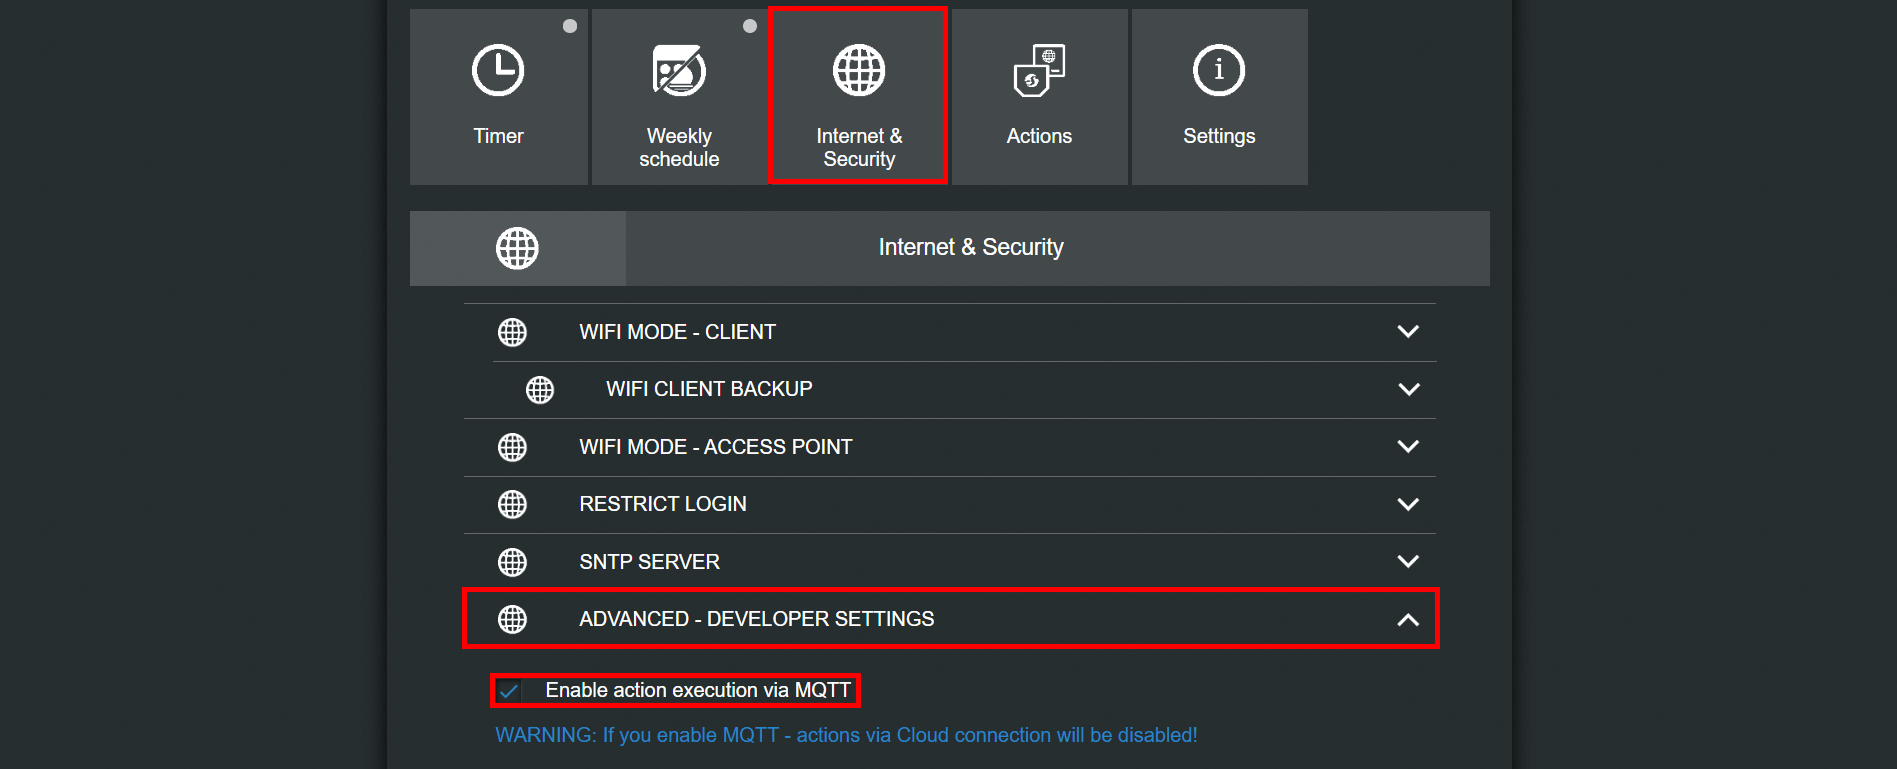 How to enable the internet security settings